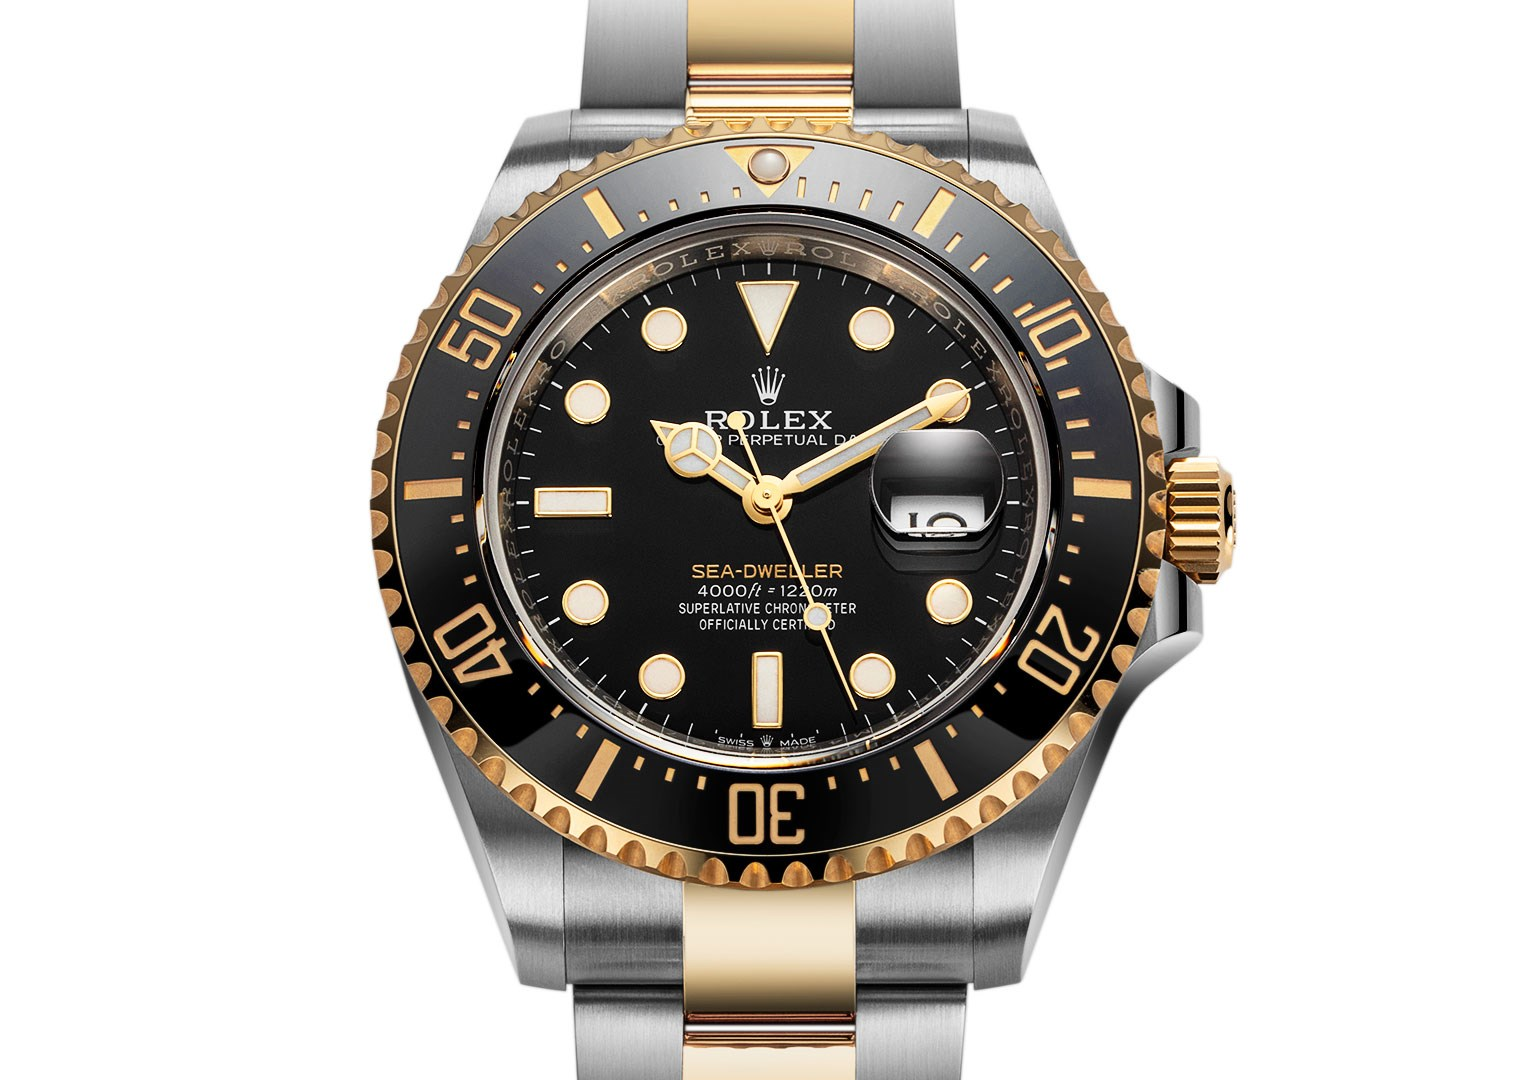 Review: Đồng hồ Rolex Sea-Dweller 126603